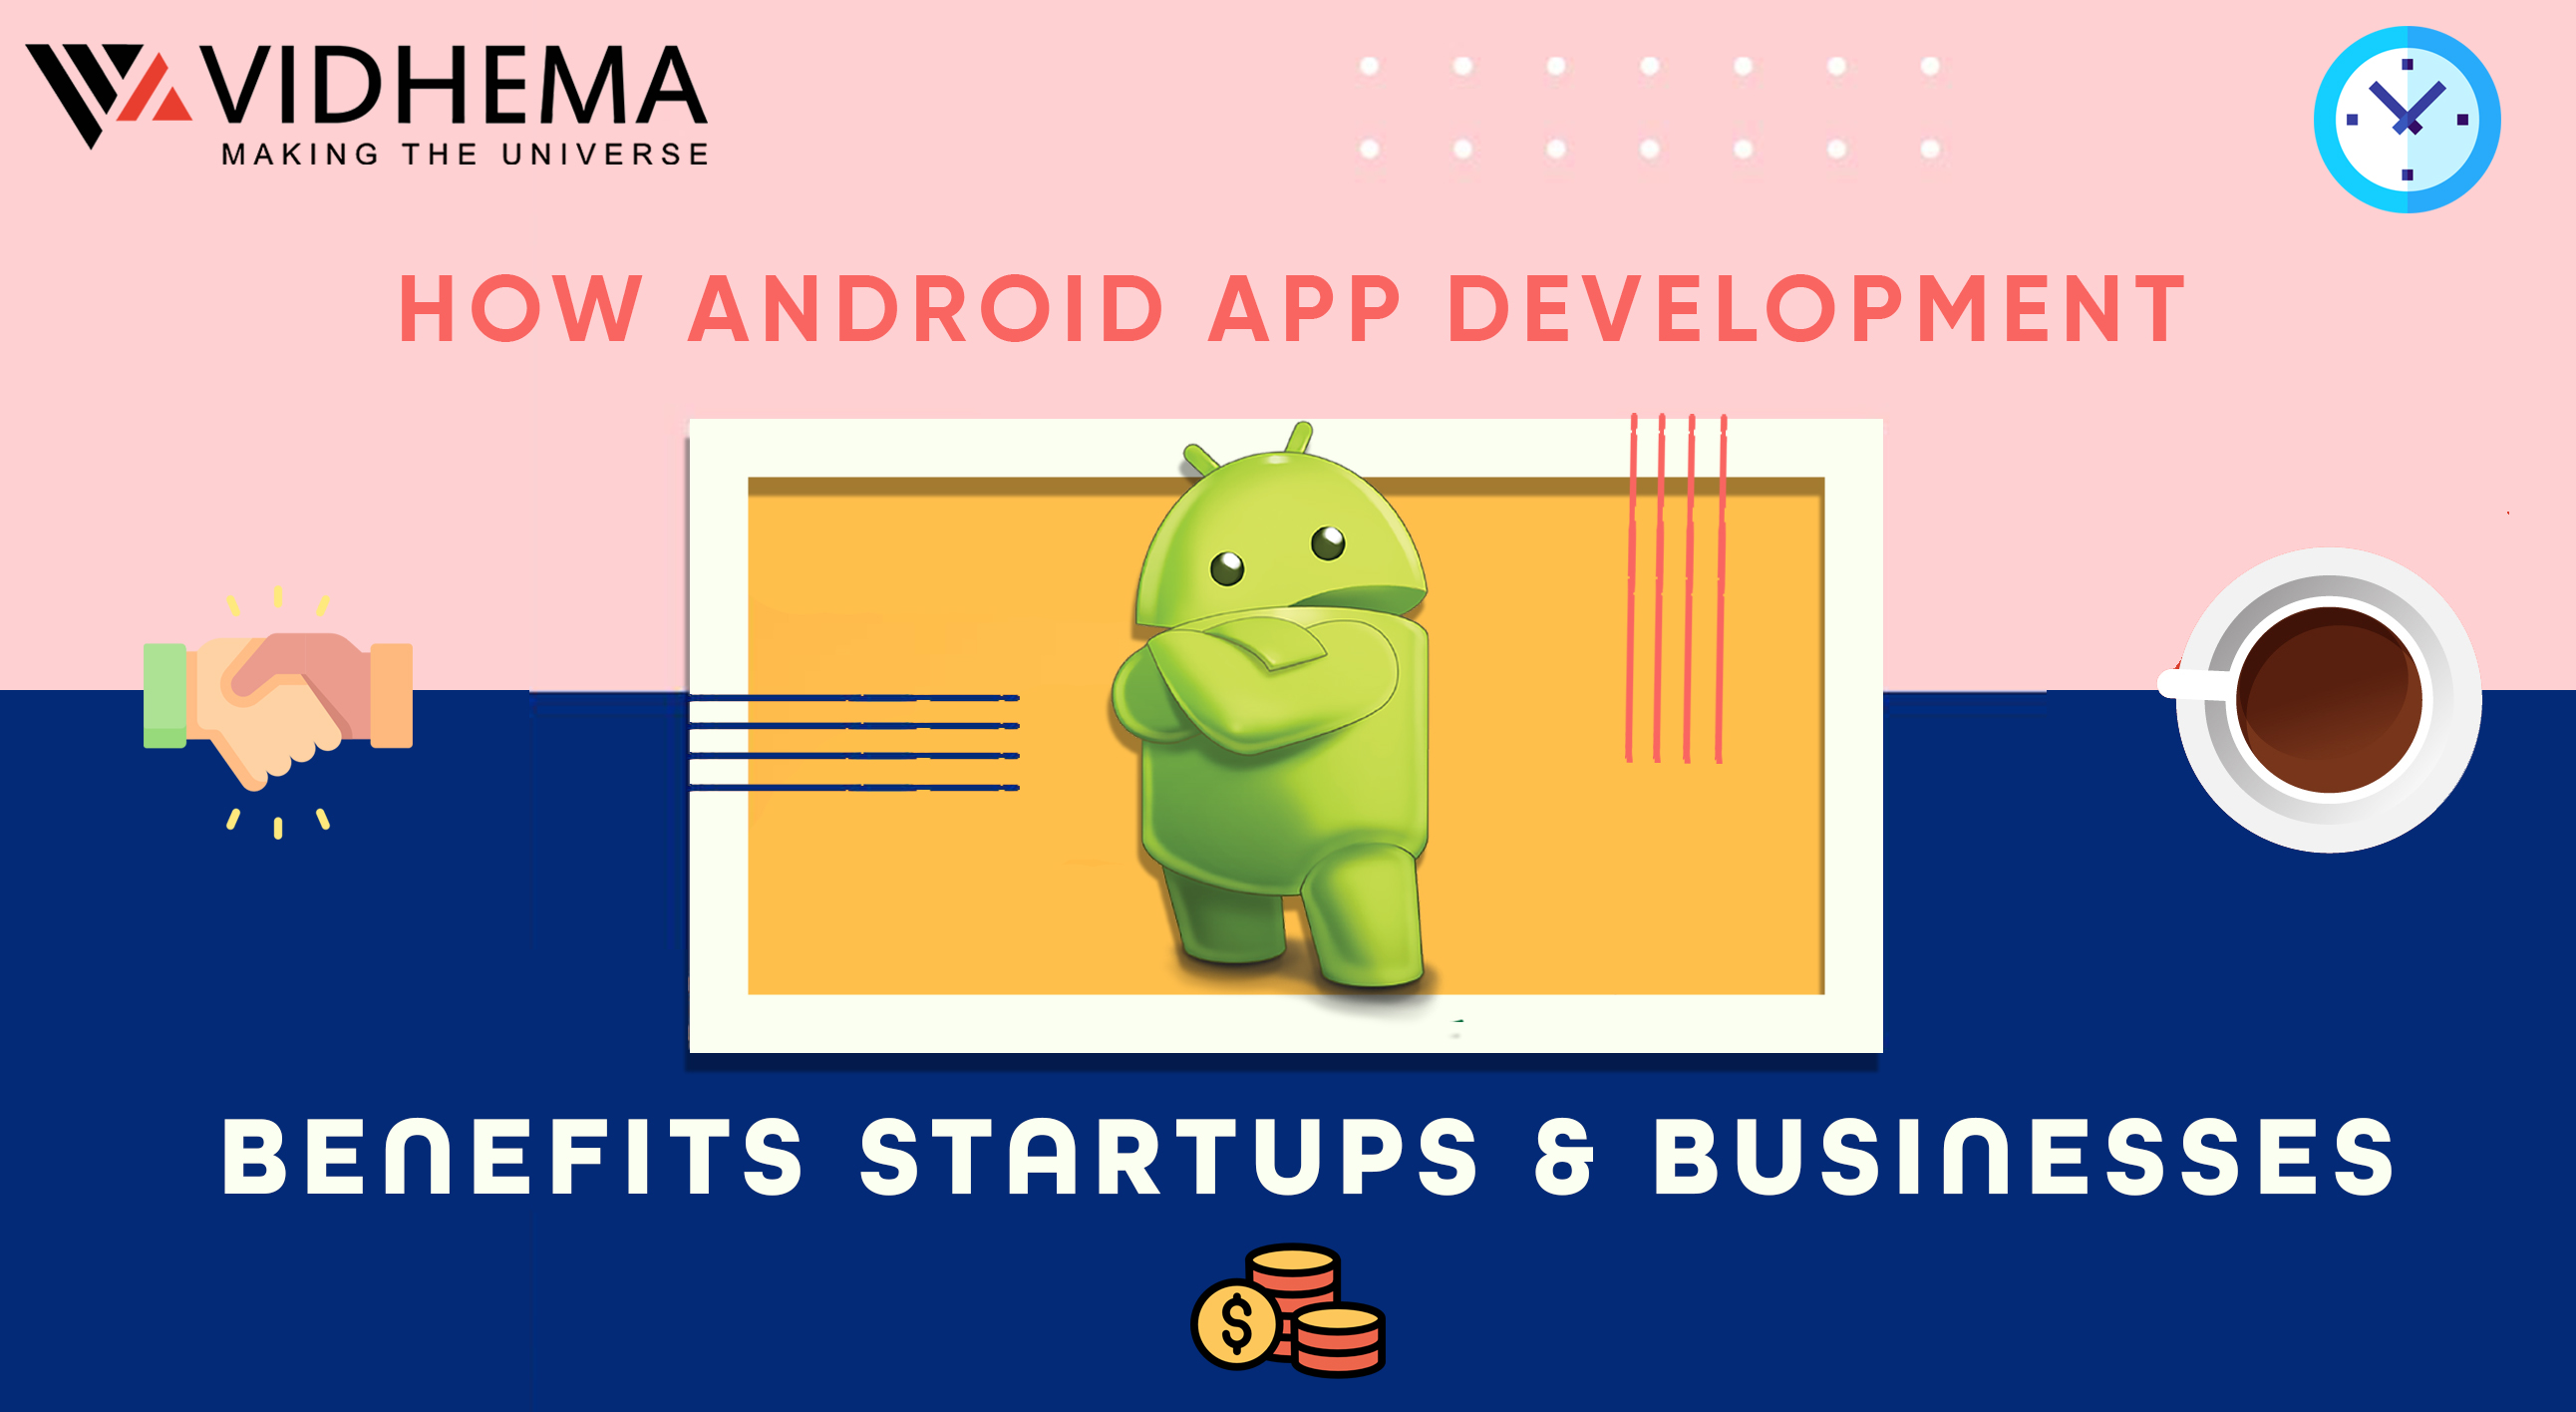 How Android App Development Benefits Startups & Businesses